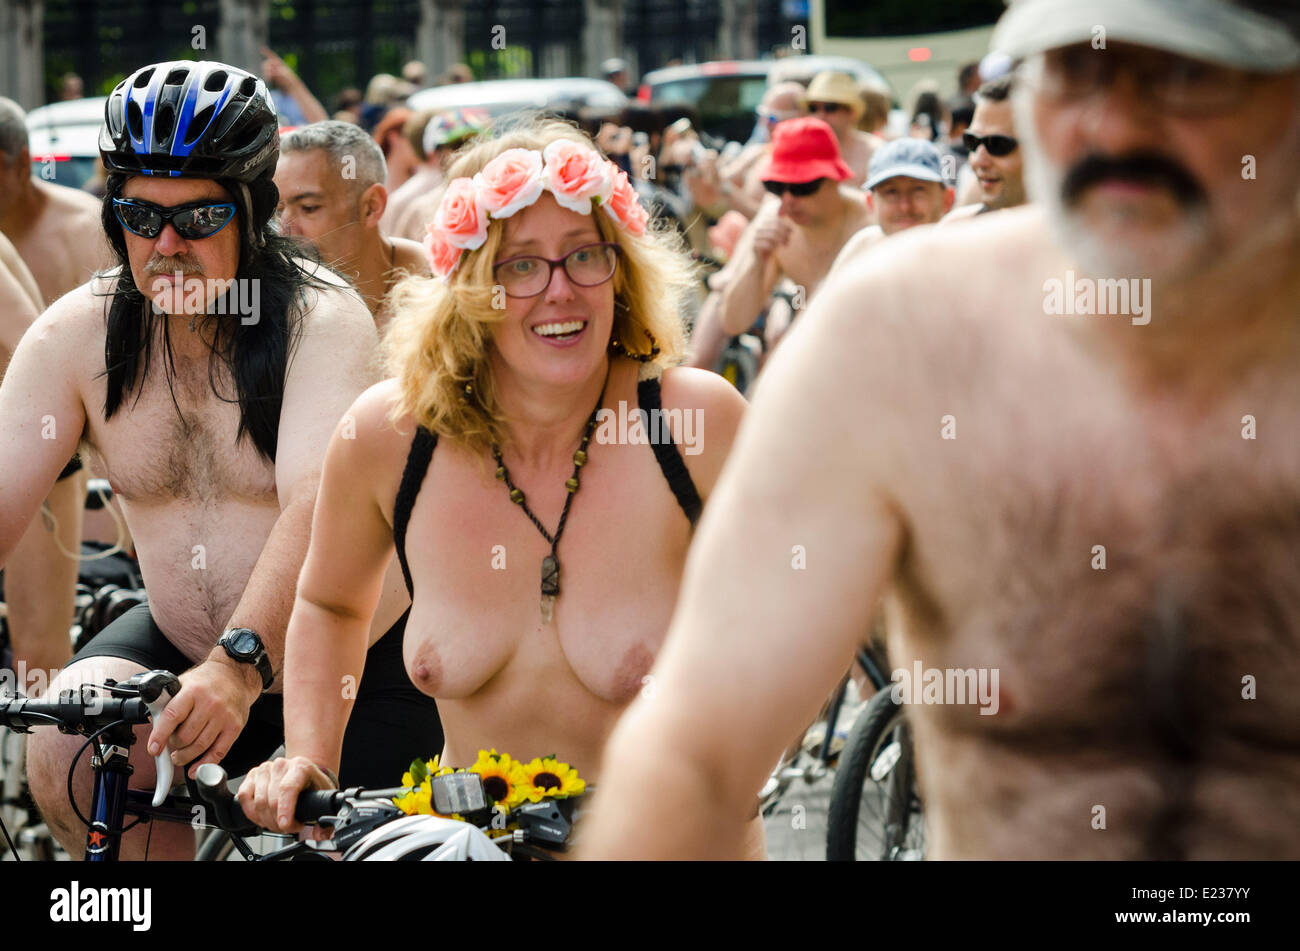 London Naked Bike Ride 2014 Credit: Guy Corbishley/Alamy Live News